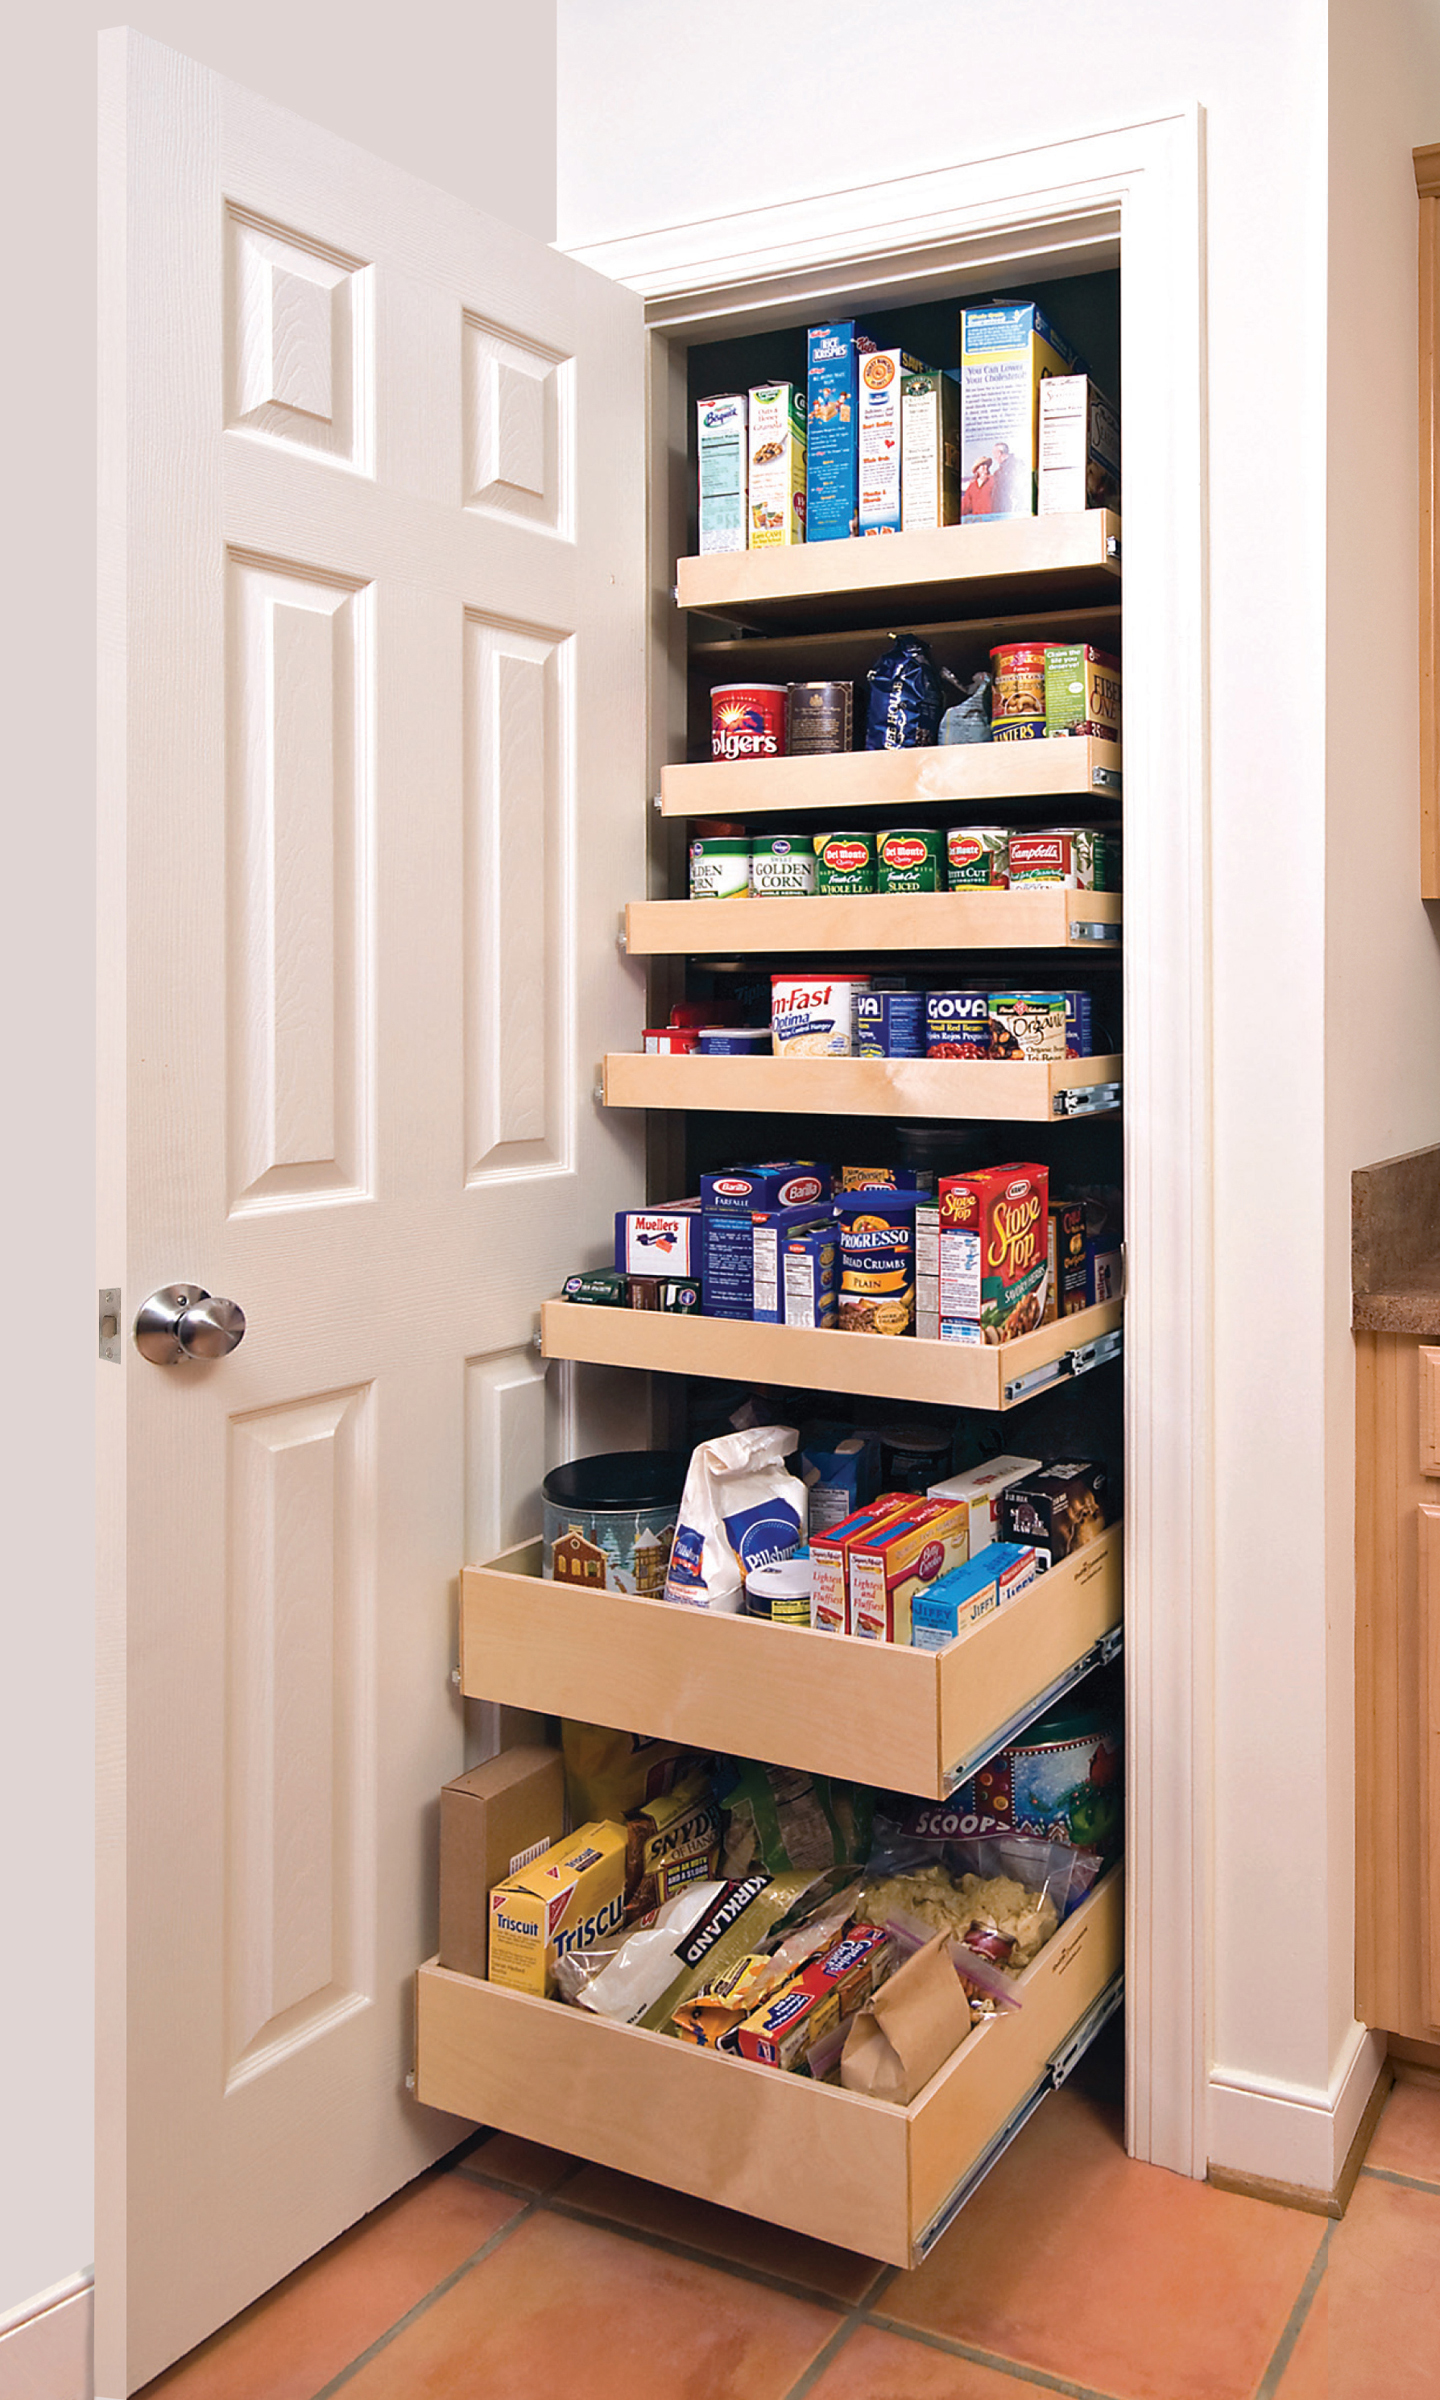 small kitchen storage ideas ikea gallery | Decorate IKEA Pull Out Pantry in Your Kitchen and Say ...